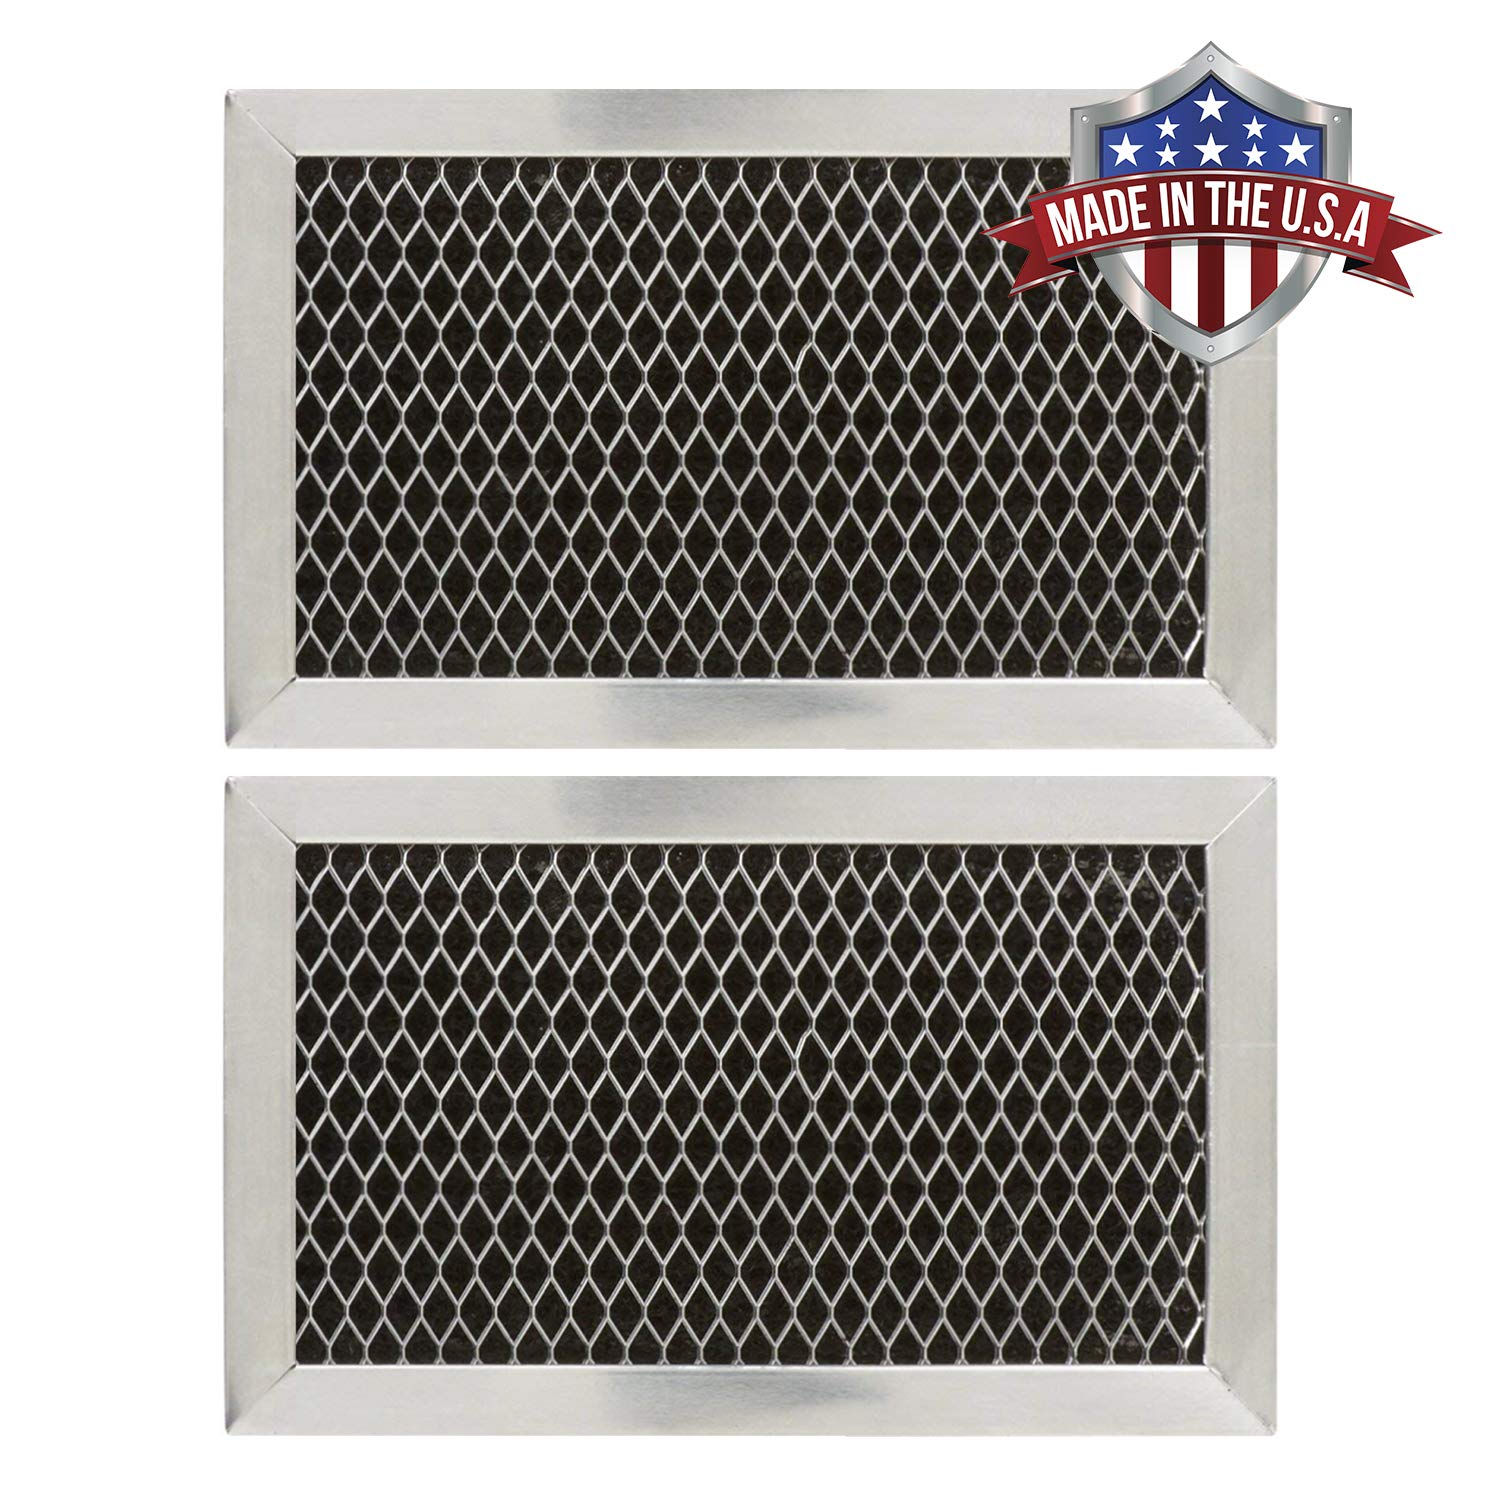 GE JX81J, WB02X11124, WB06X10823 Microwave Recirculating Charcoal Filter (Made in USA) (2-Pack)